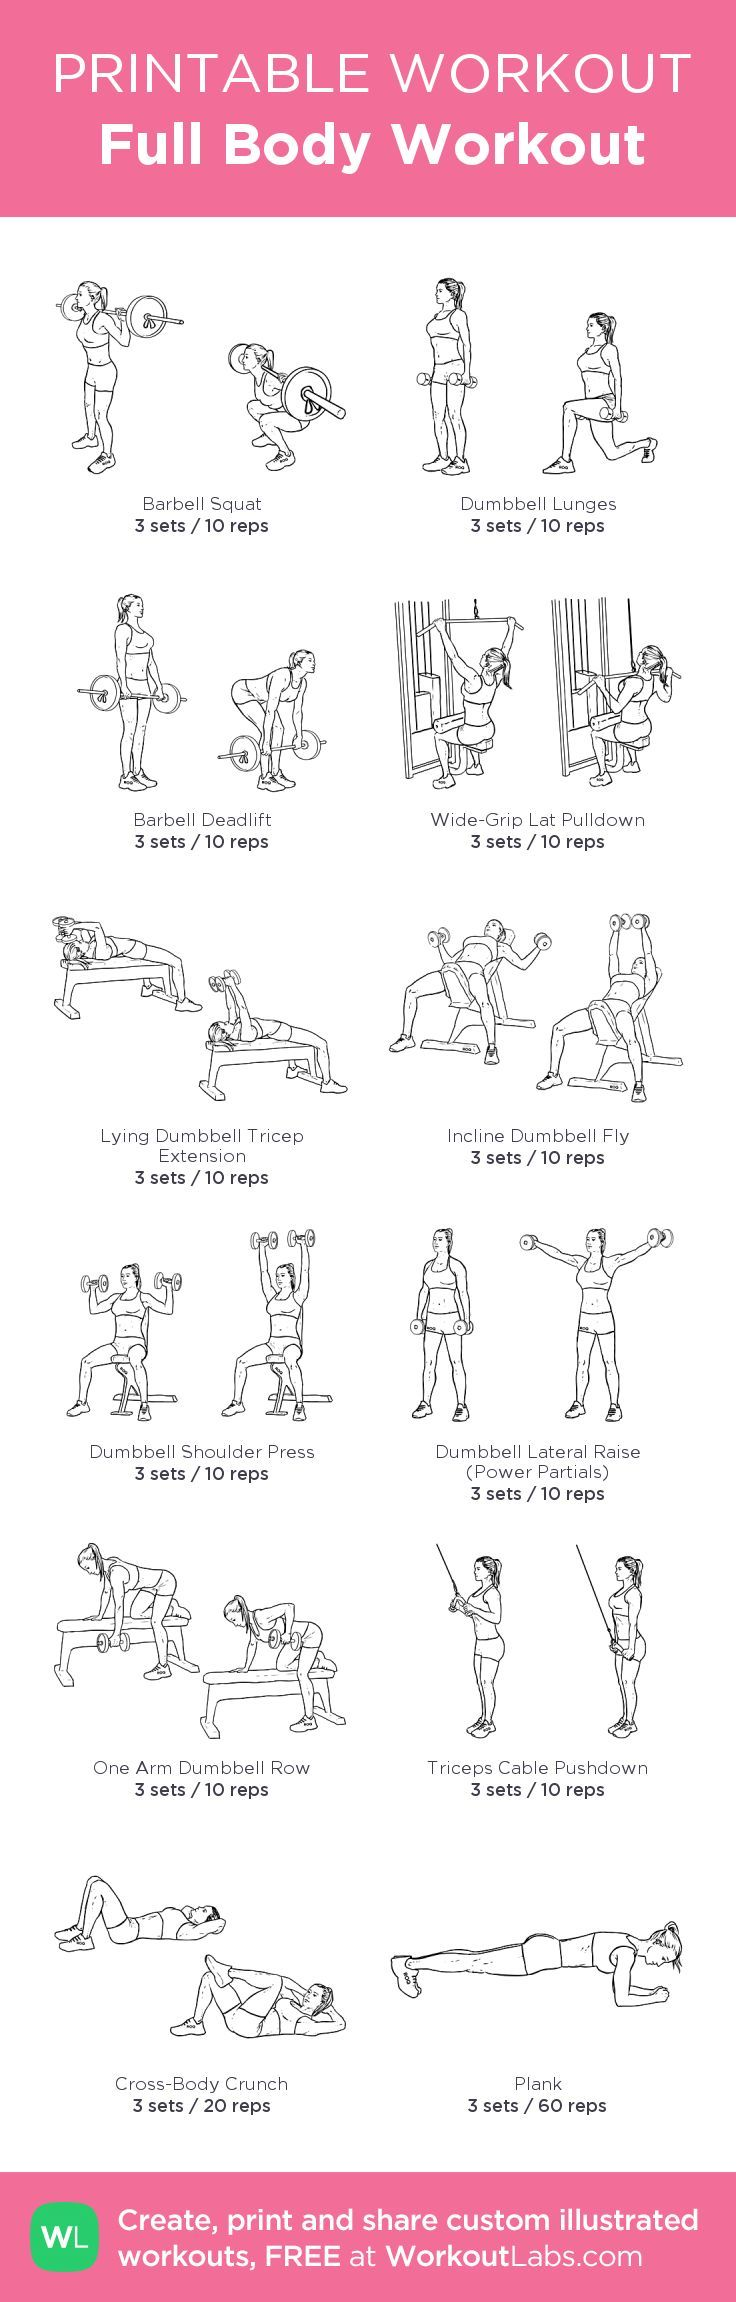 Full Body Workout: my custom printable workout by ...